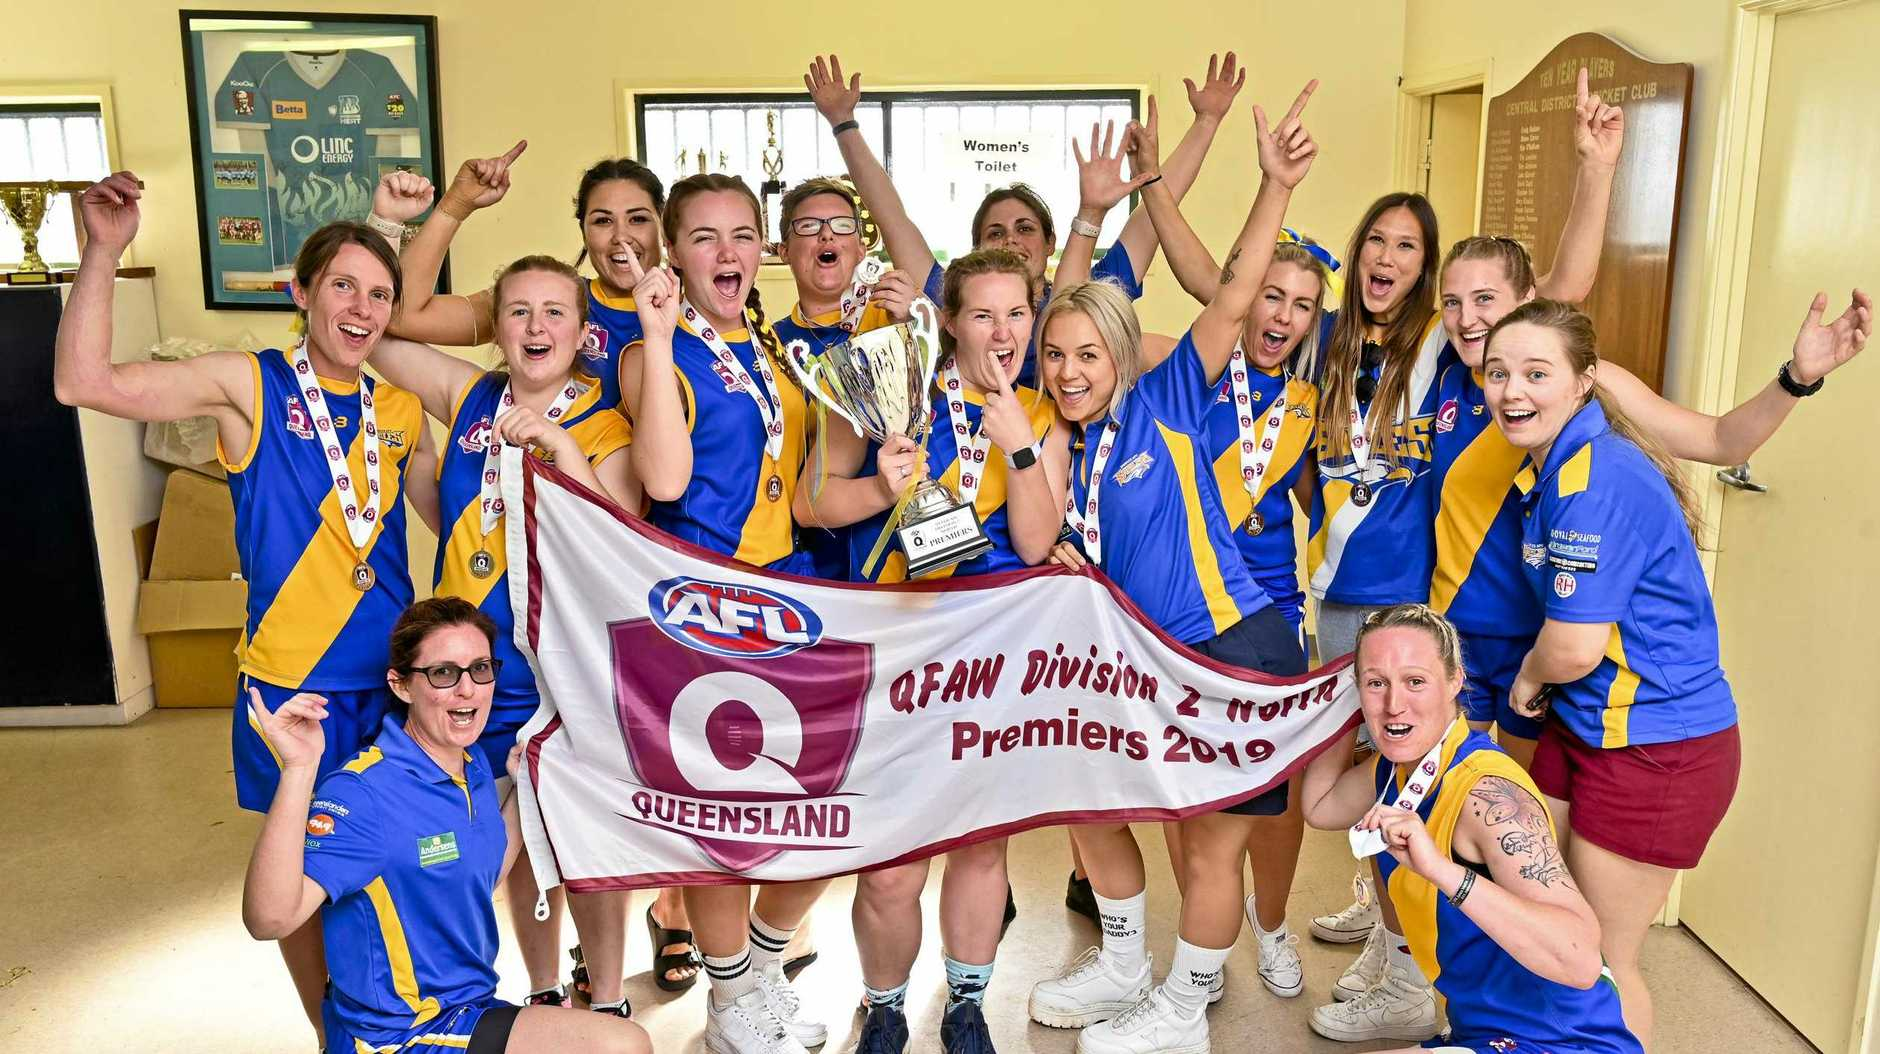 TOP TRIUMPH: Ipswich Eagles players with the QFAW Division 2 North grand final flag they won today in a historic moment for the club.